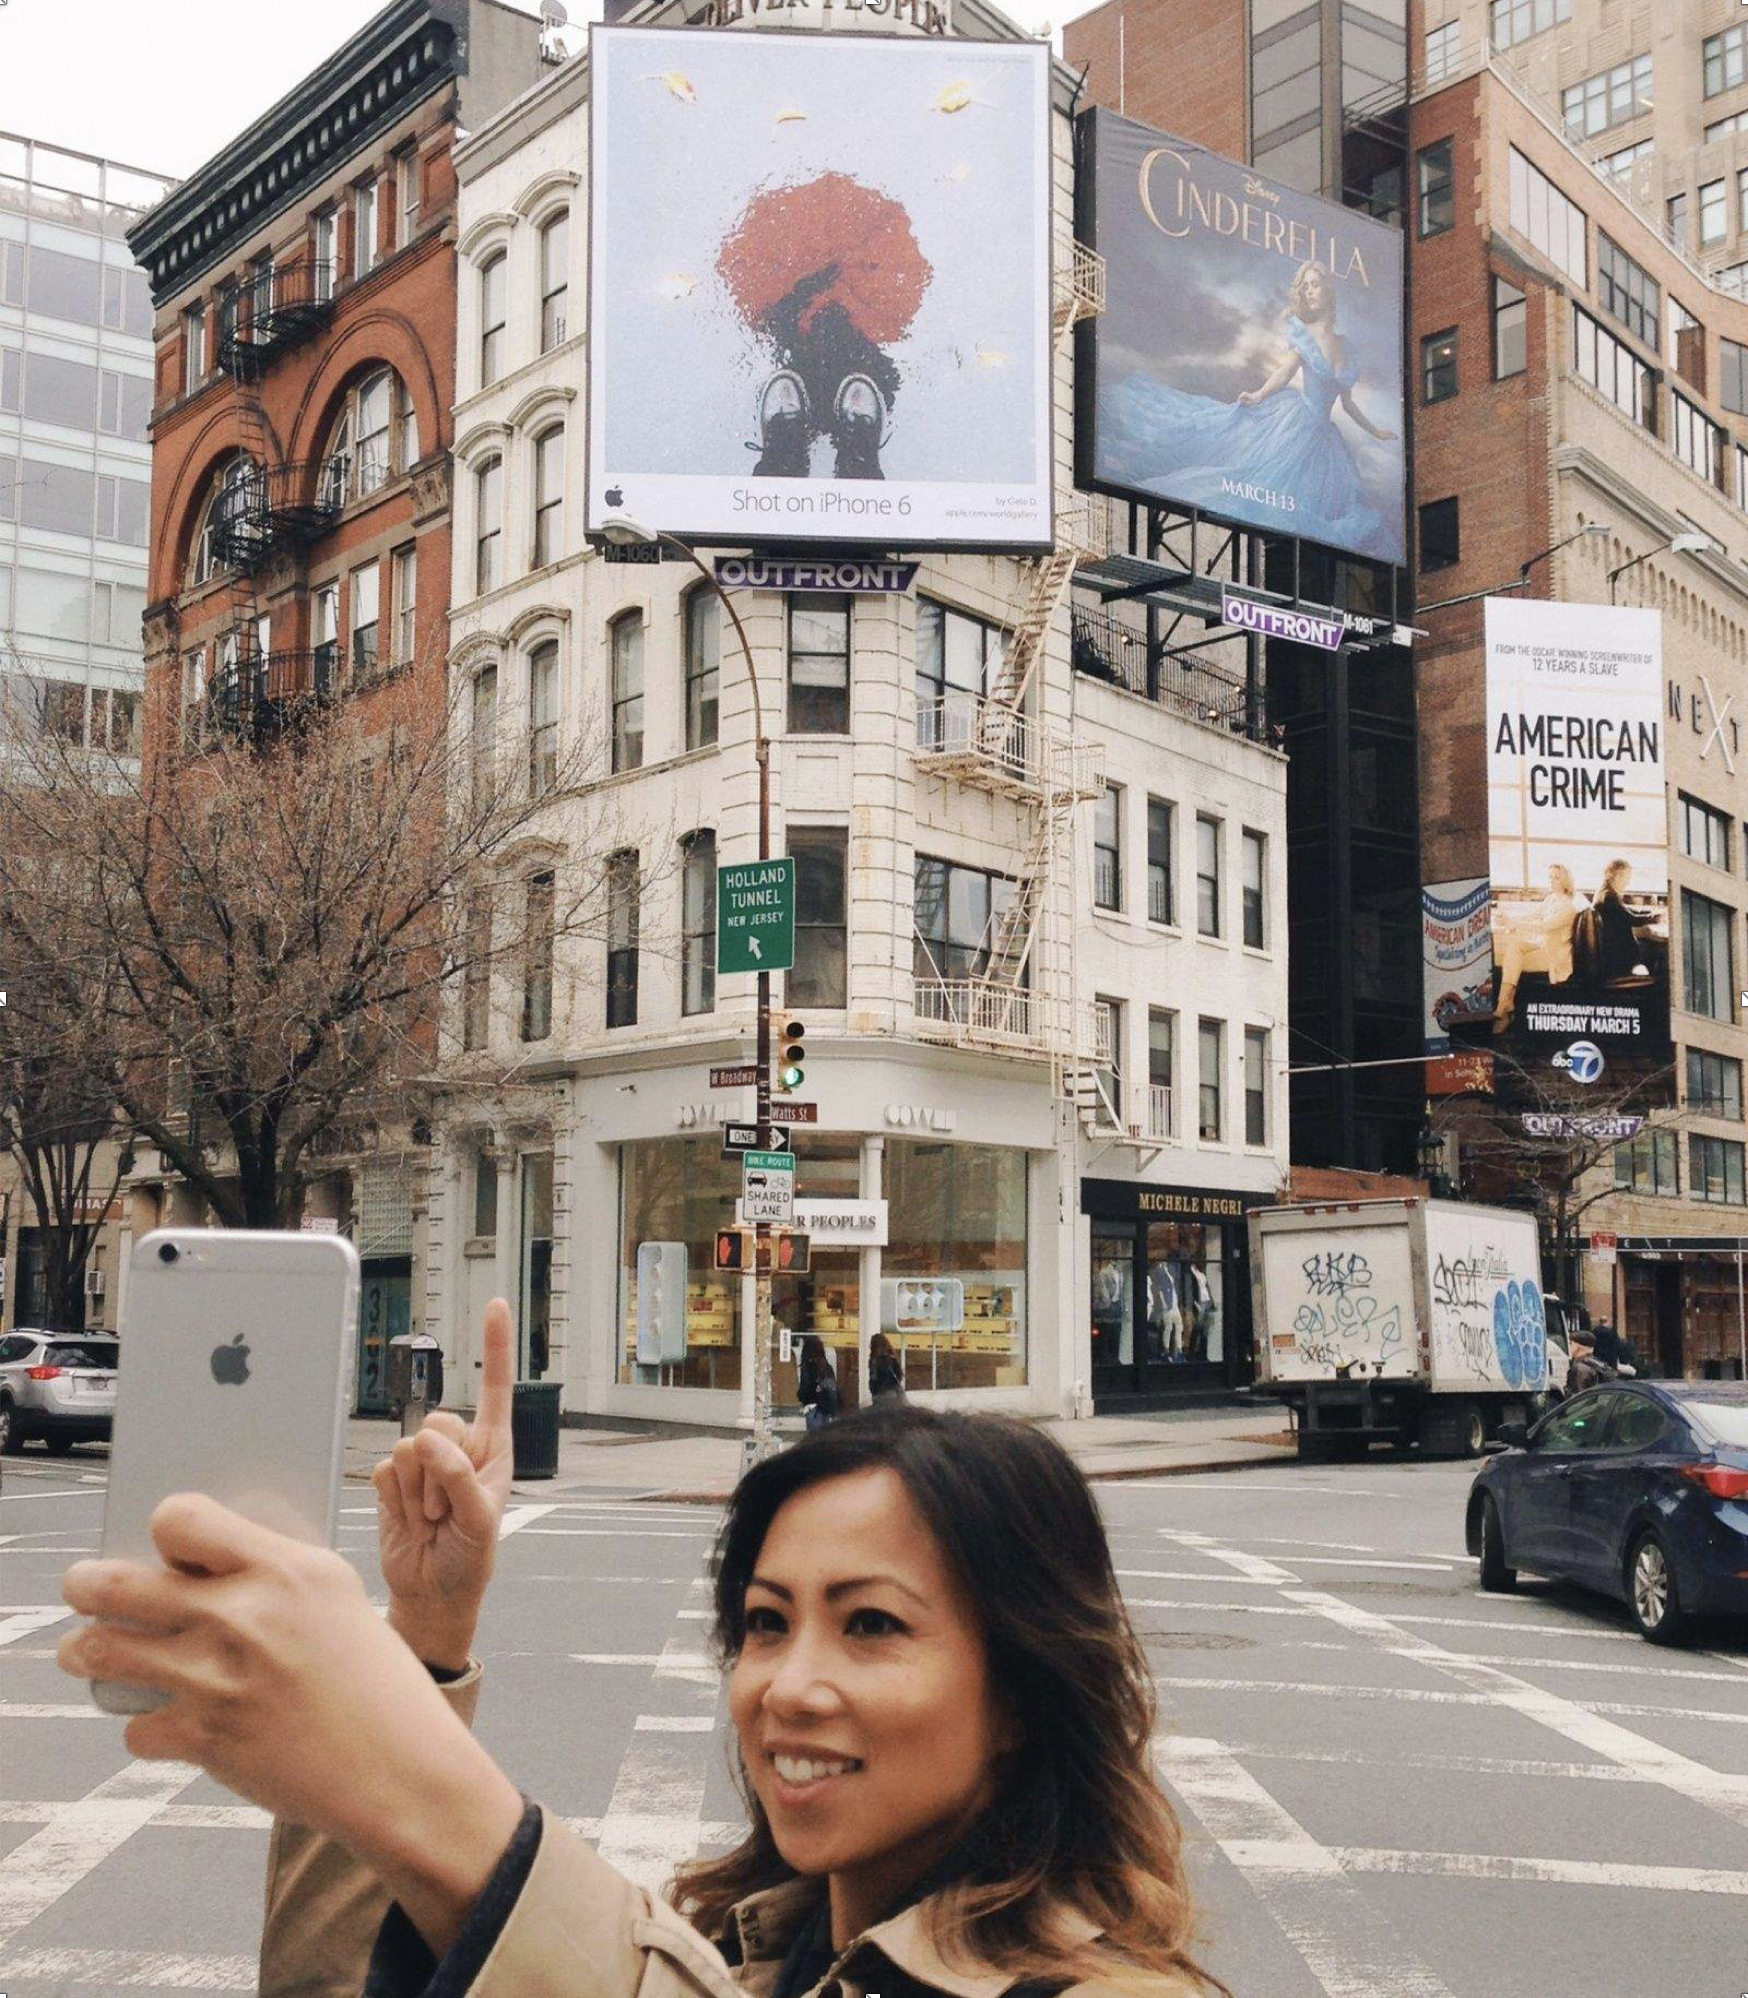 Cielo de la Paz traveled from her home in Alameda, Calif., to New York City to see her photo on a billboard. Photo: Courtesy of Cielo de la Paz